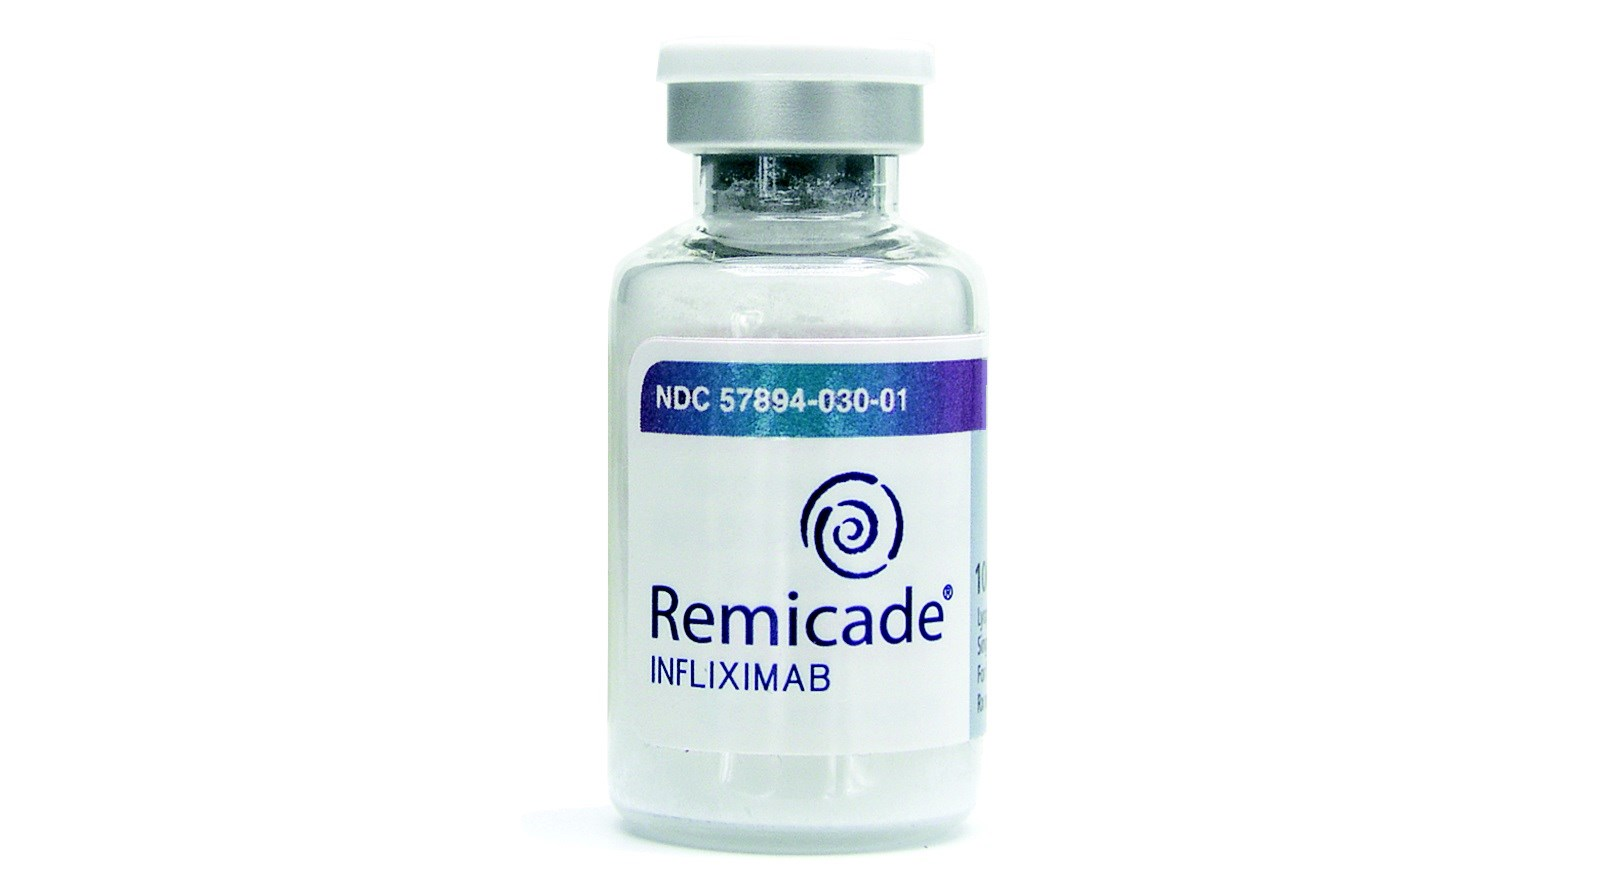 With support of FDA committee, Remicade biosimilar edges closer to market